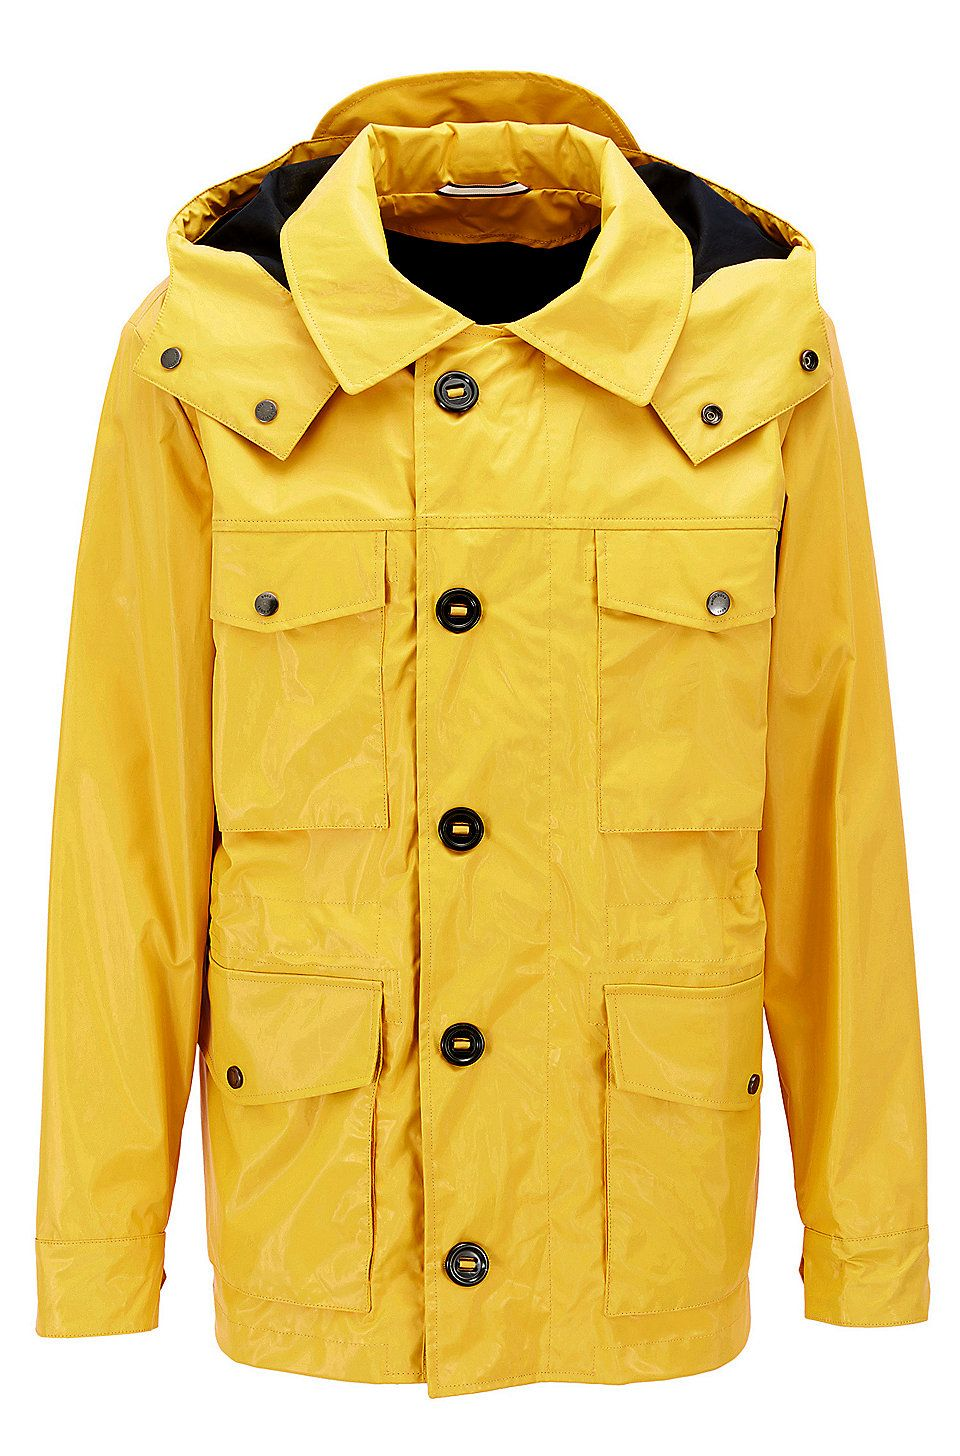 Hugo Boss Coated Cotton Field Jacket With Detachable Hood Yellow Casual Jackets From Boss For Men In The Official Hugo Boss On Field Jacket Jackets Boss Coat [ 1456 x 960 Pixel ]